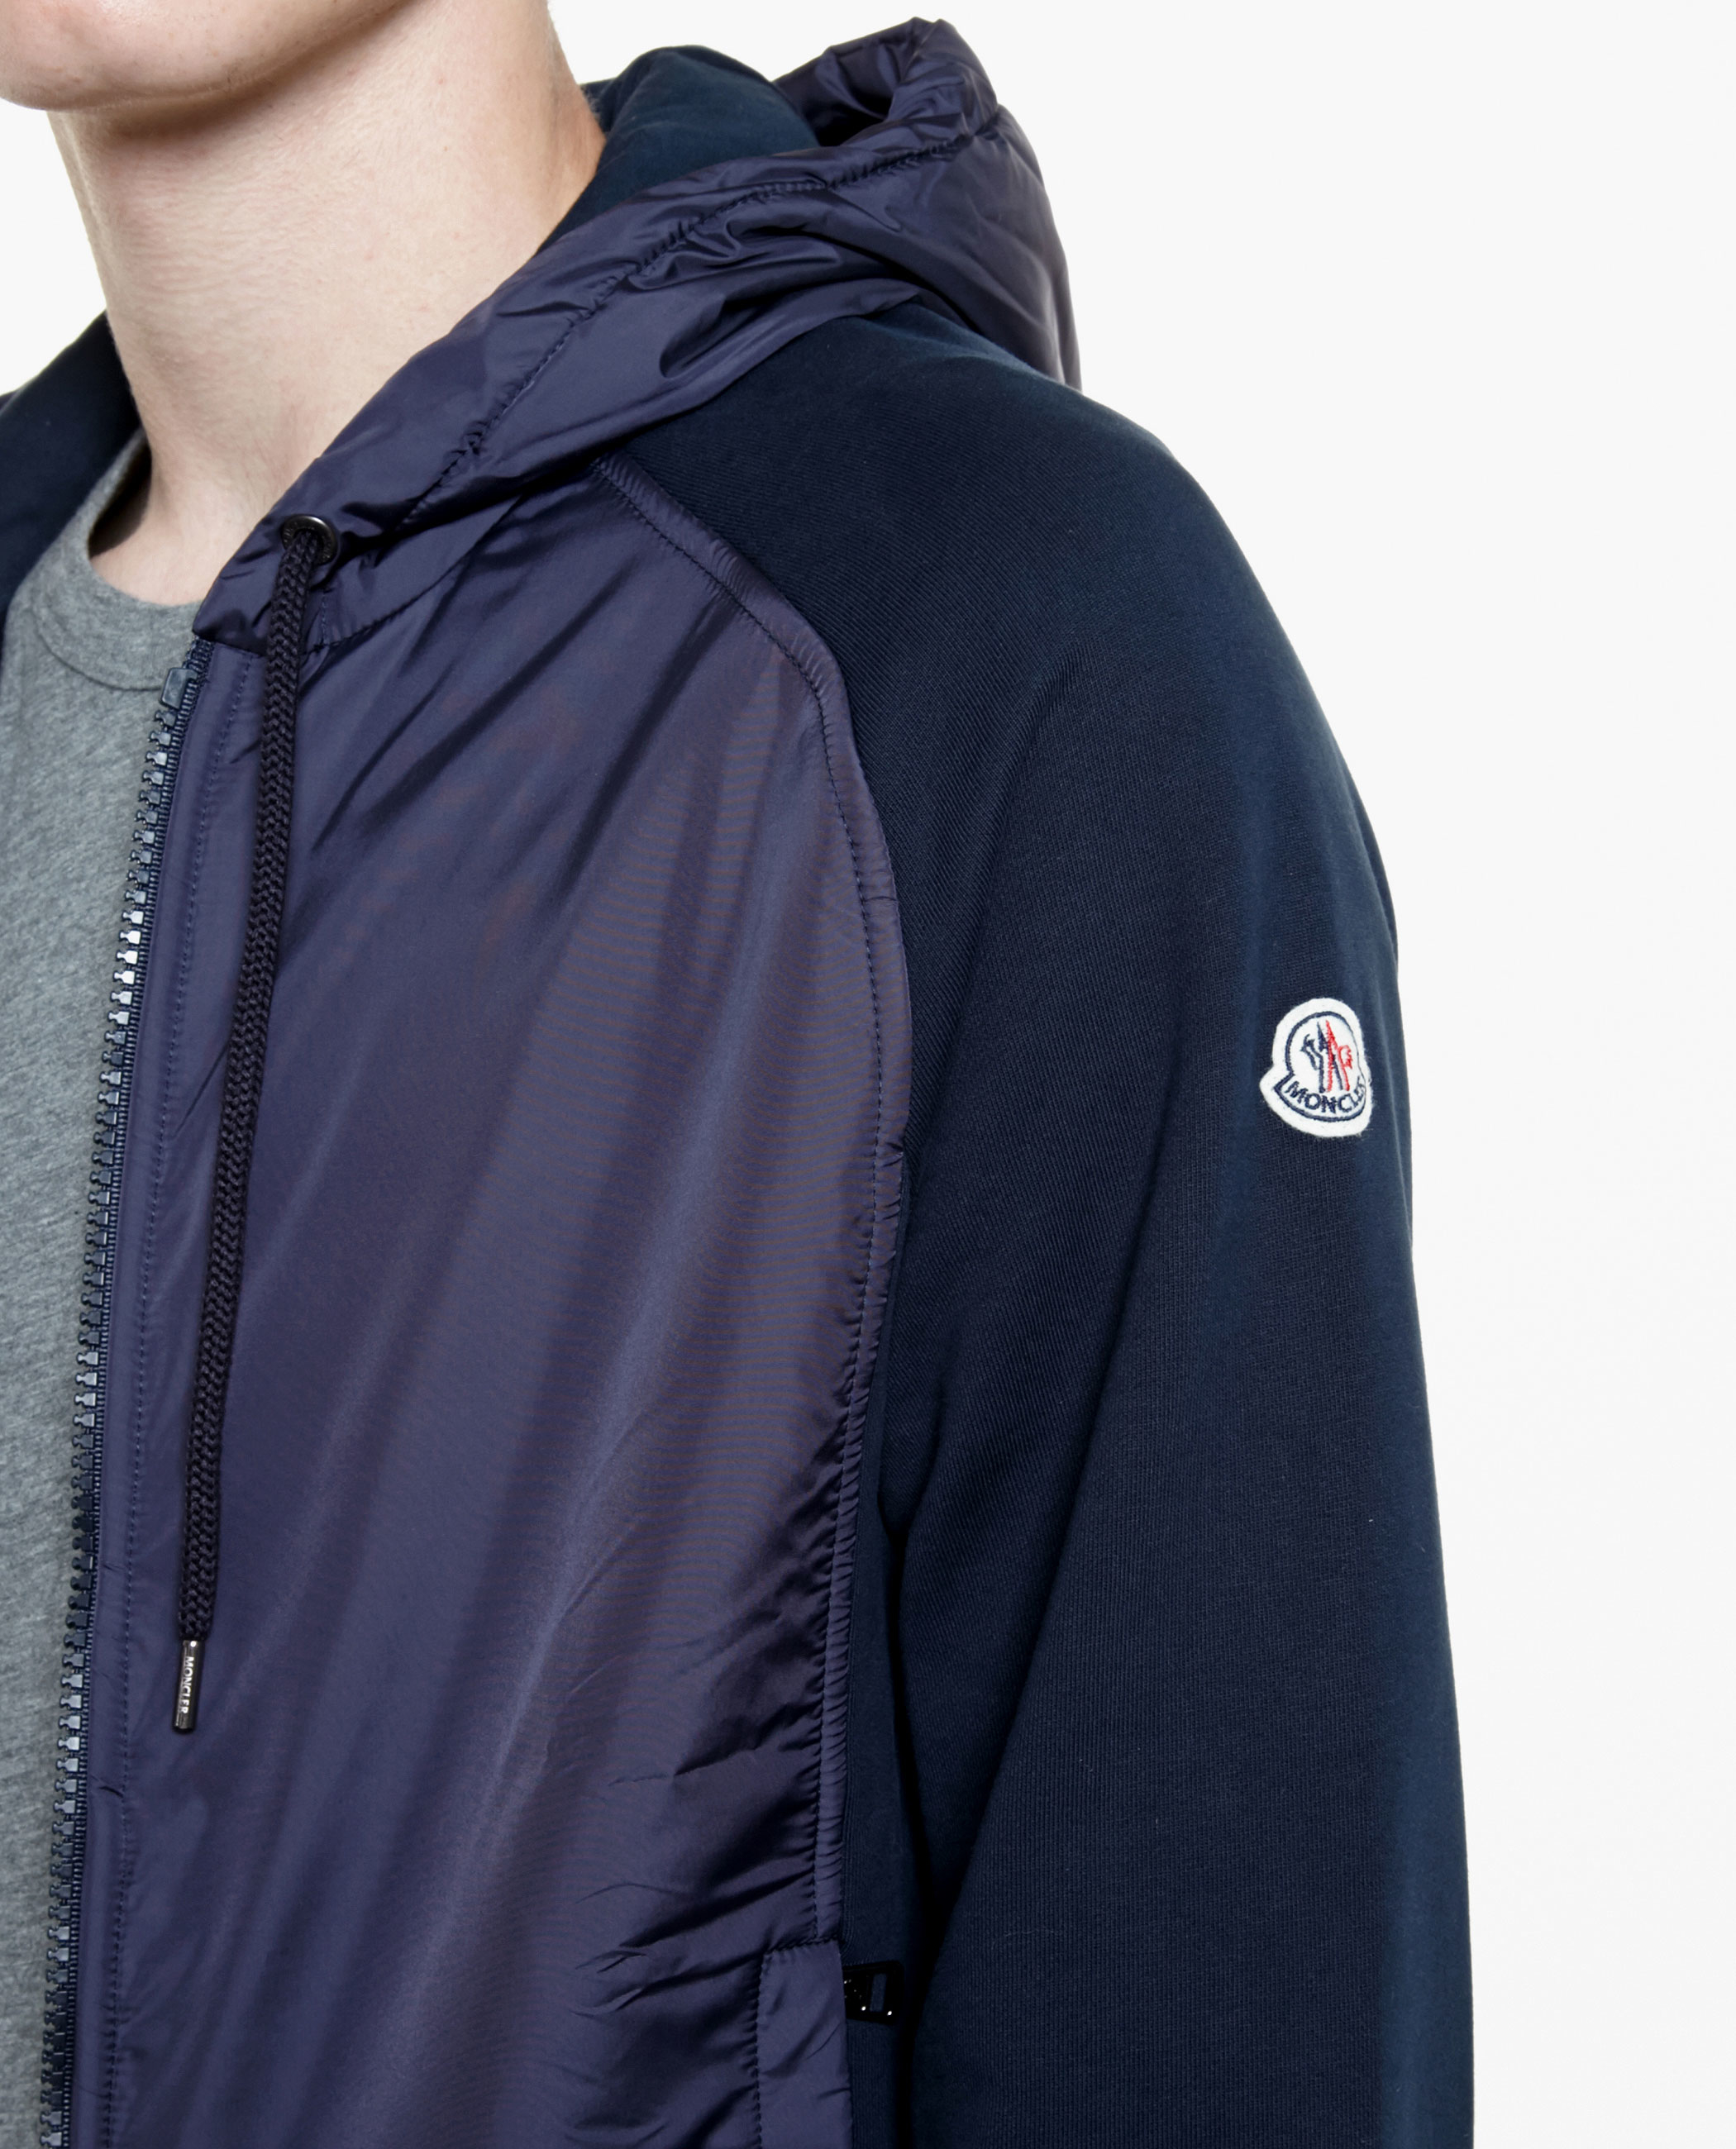 481441f3dfc3 purchase mens moncler hooded jacket 29ee1 bd83a